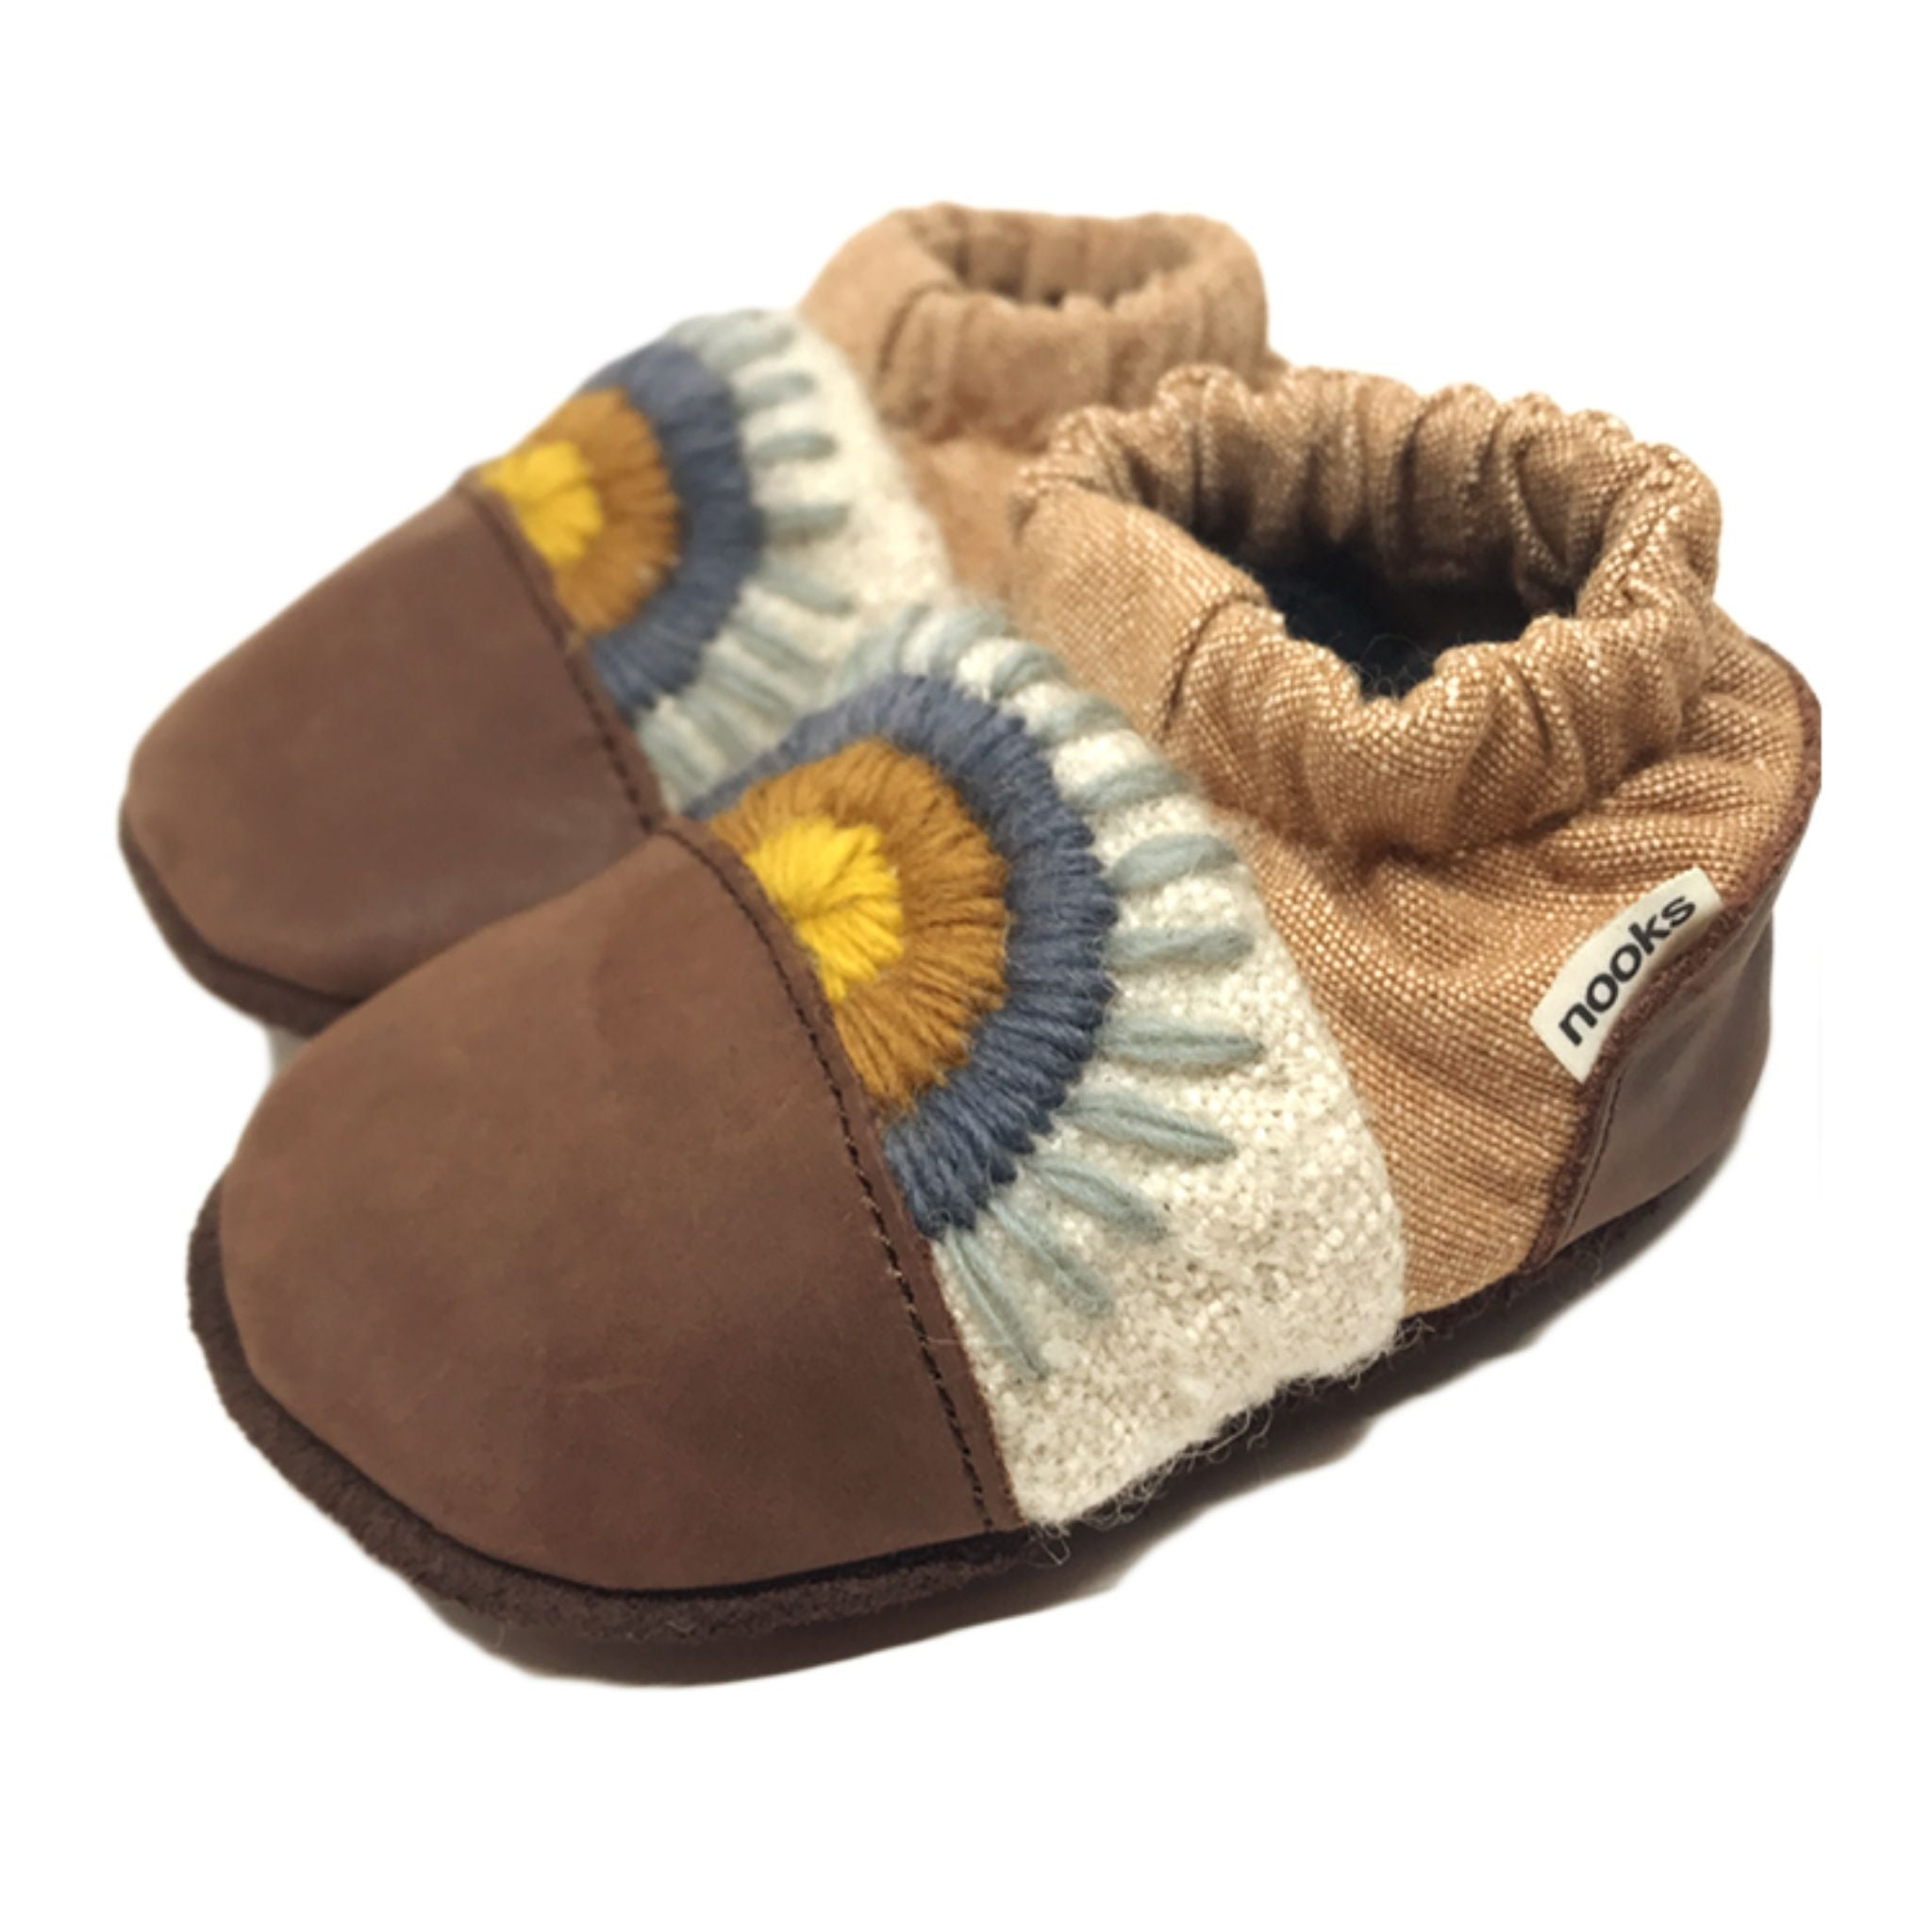 nooks design canvas and leather booties in baffin dark brown toe and heel; blue, orange, yellow rainbow design in middle and tan around ankle